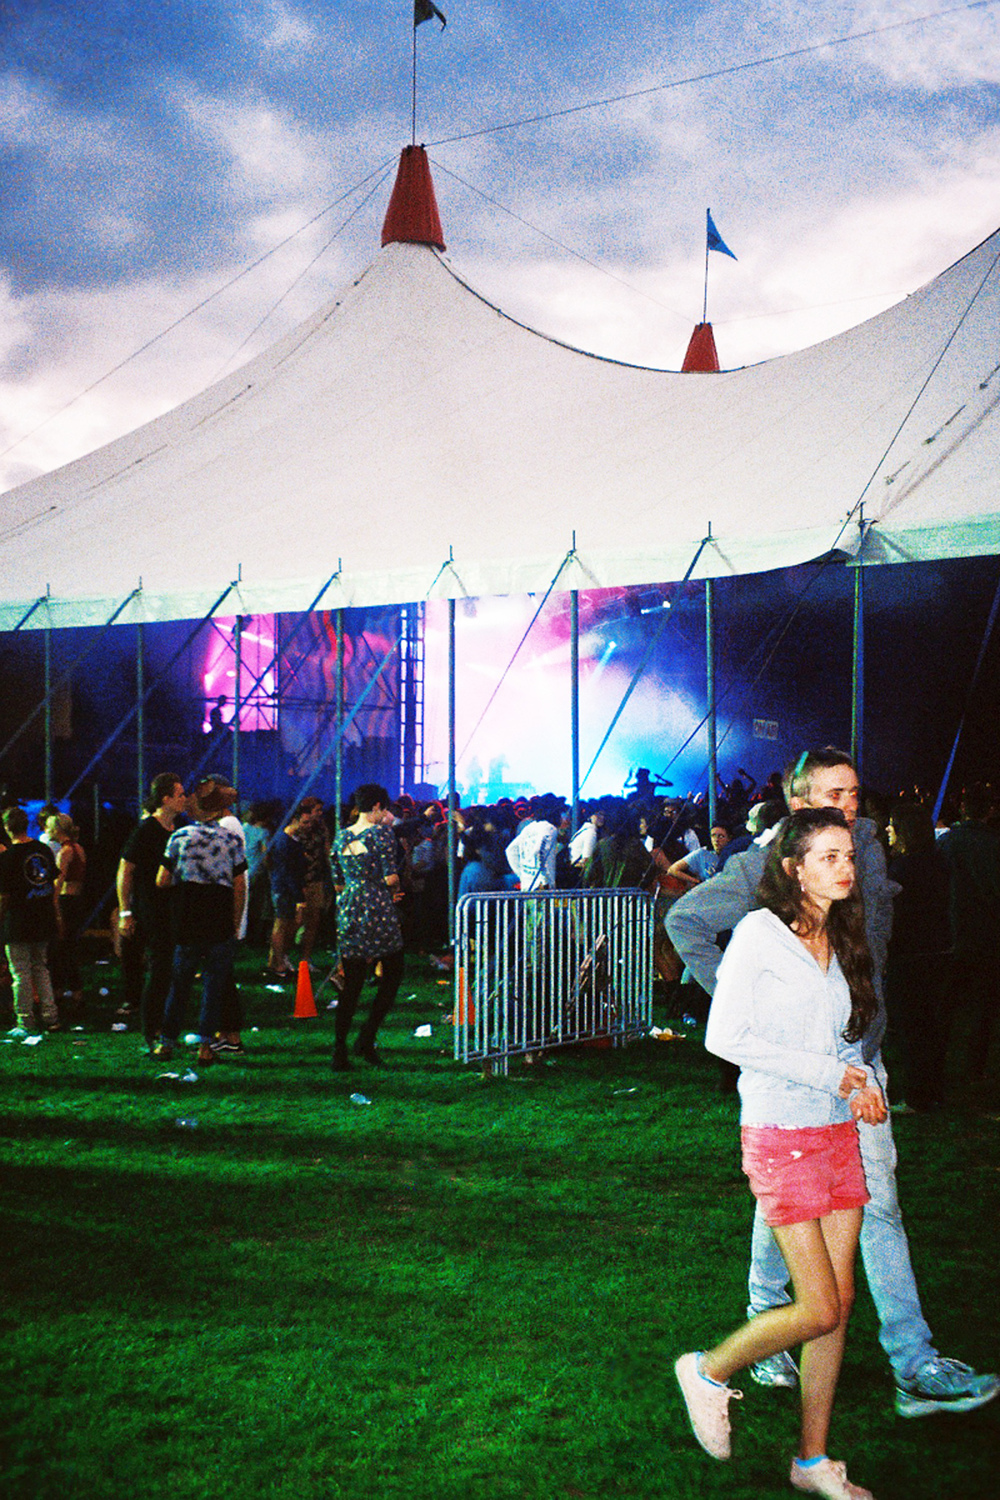 VOENA_GROOVIN_THE_MOO_CANBERRA_FILM_2015_35MM_PHOTOS-37.jpg